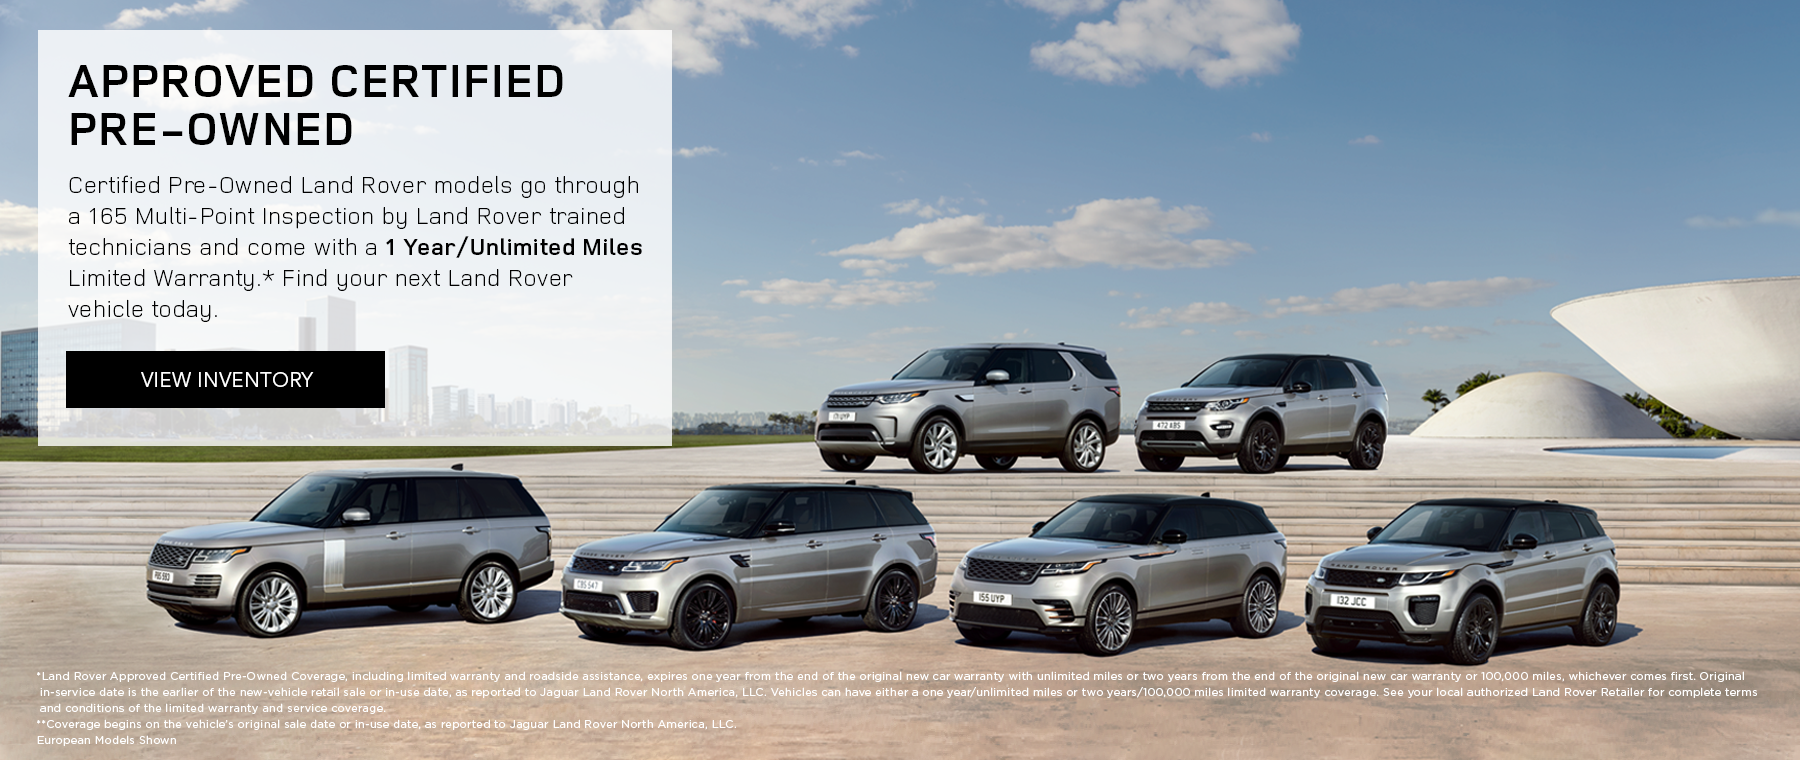 Land Rover Approved Certified Pre-Owned Banner